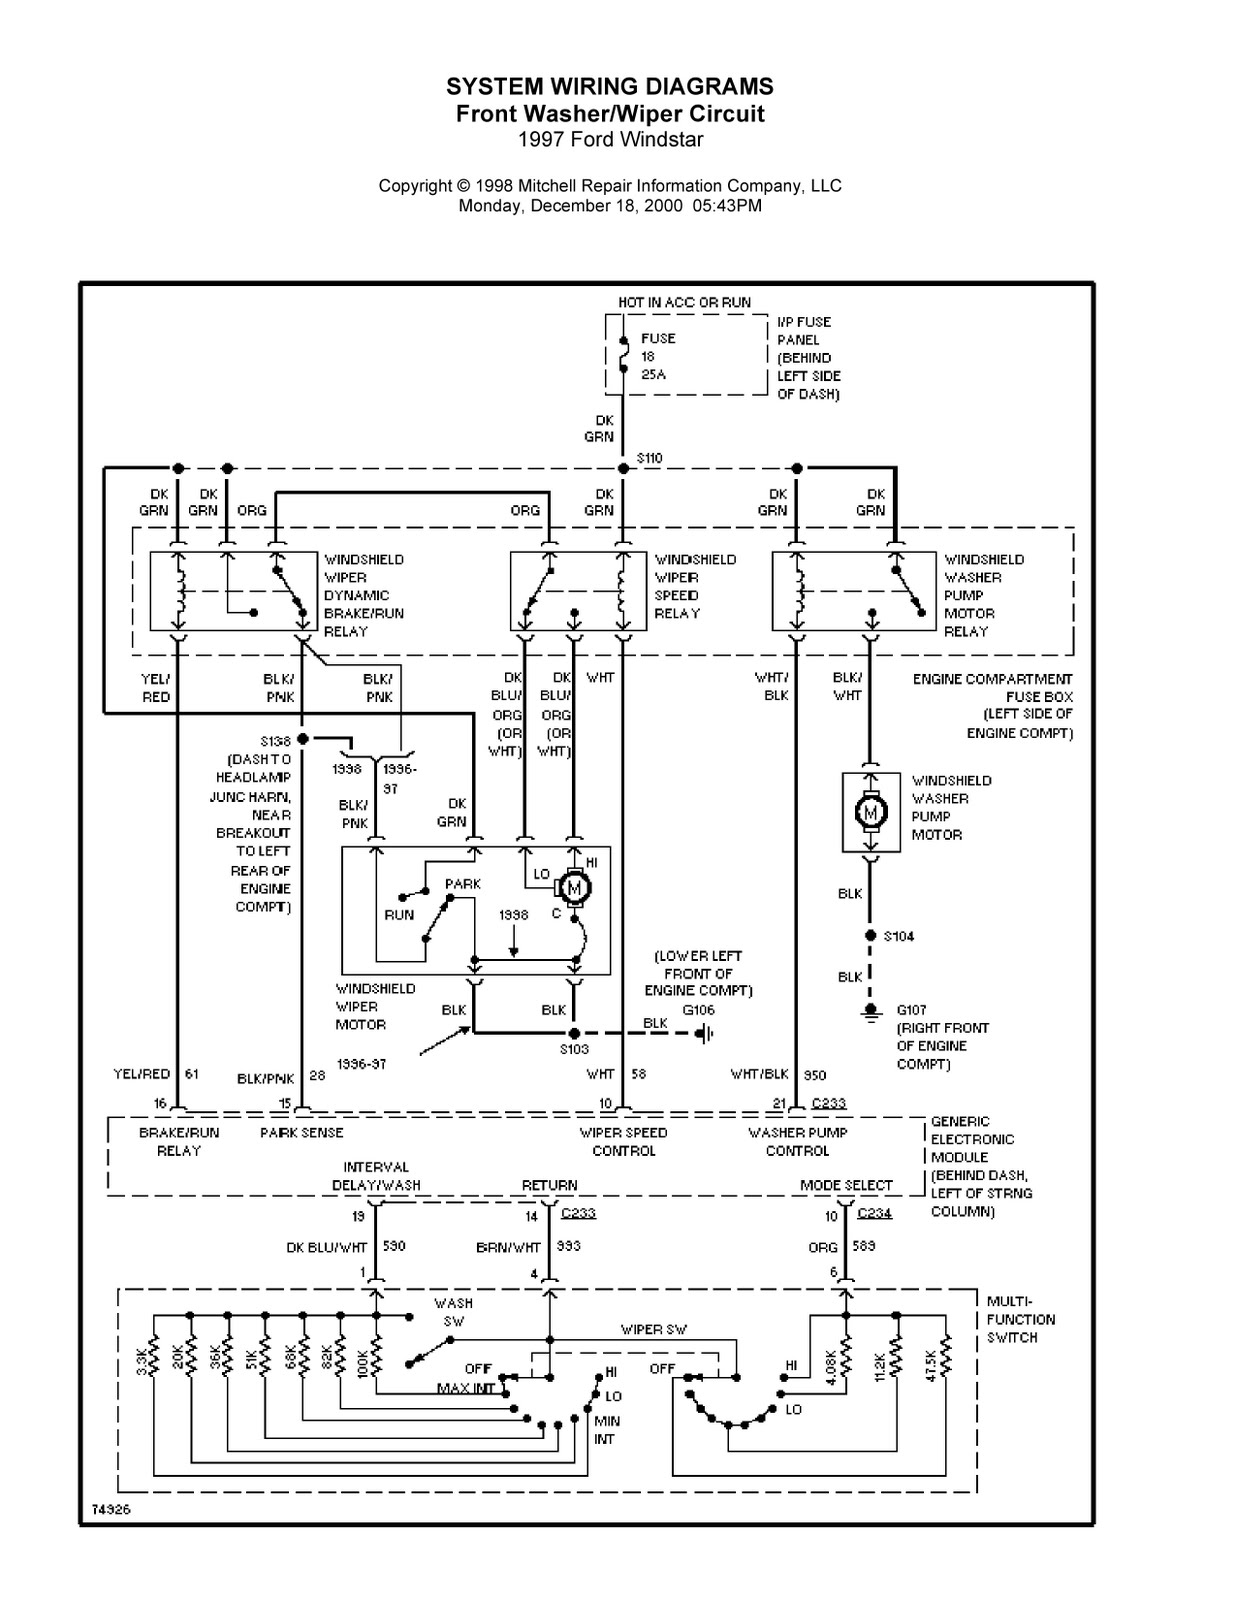 1997 Ford Windstar Complete System Wiring Diagrams